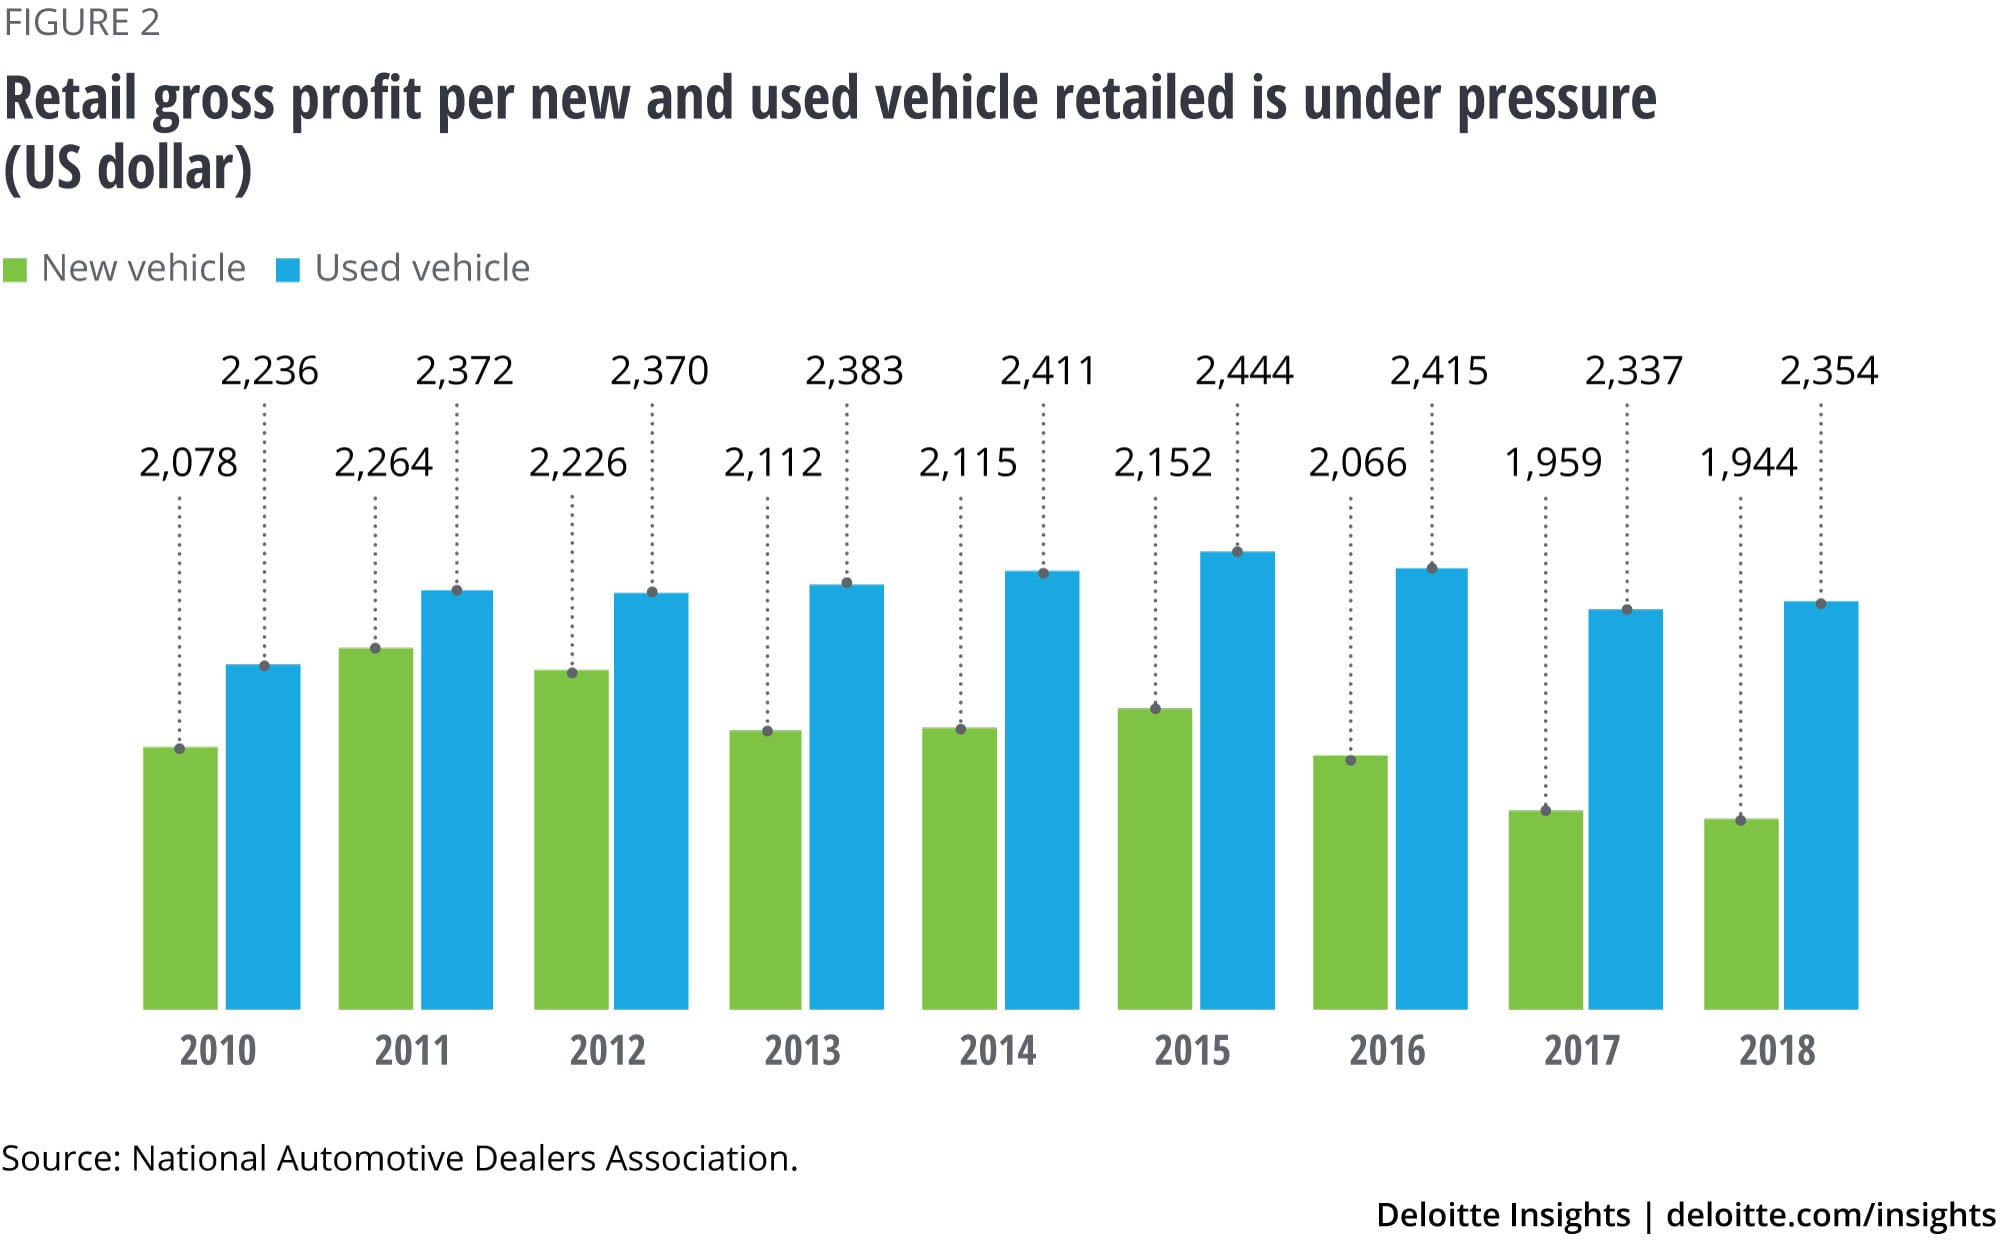 Retail gross profit per new and used vehicle retailed is under pressure (US dollar)